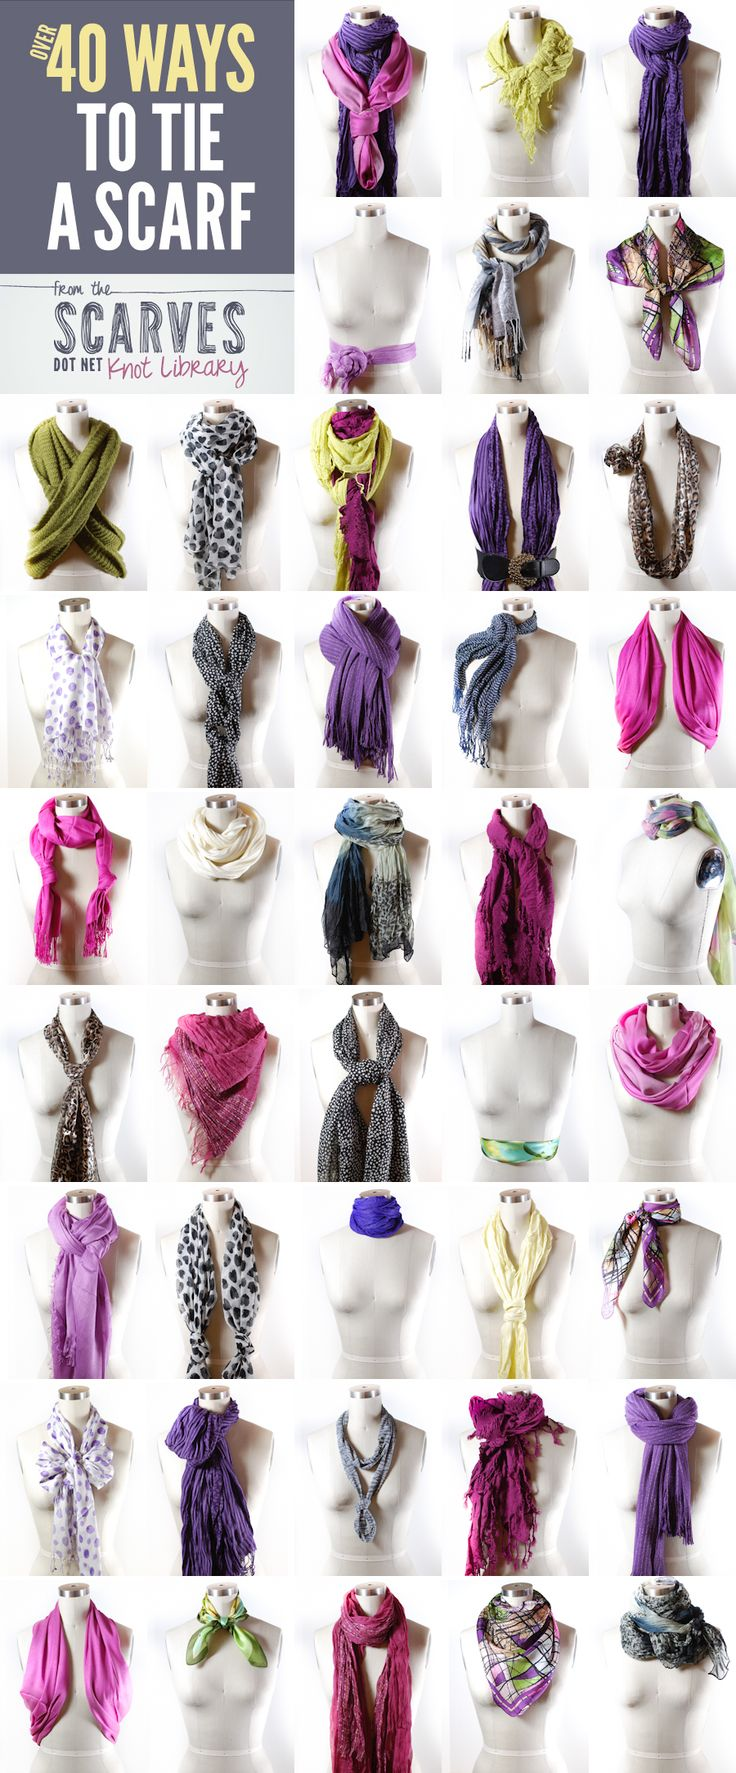 50+ Ways to Tie a Scarf (with photos + video)